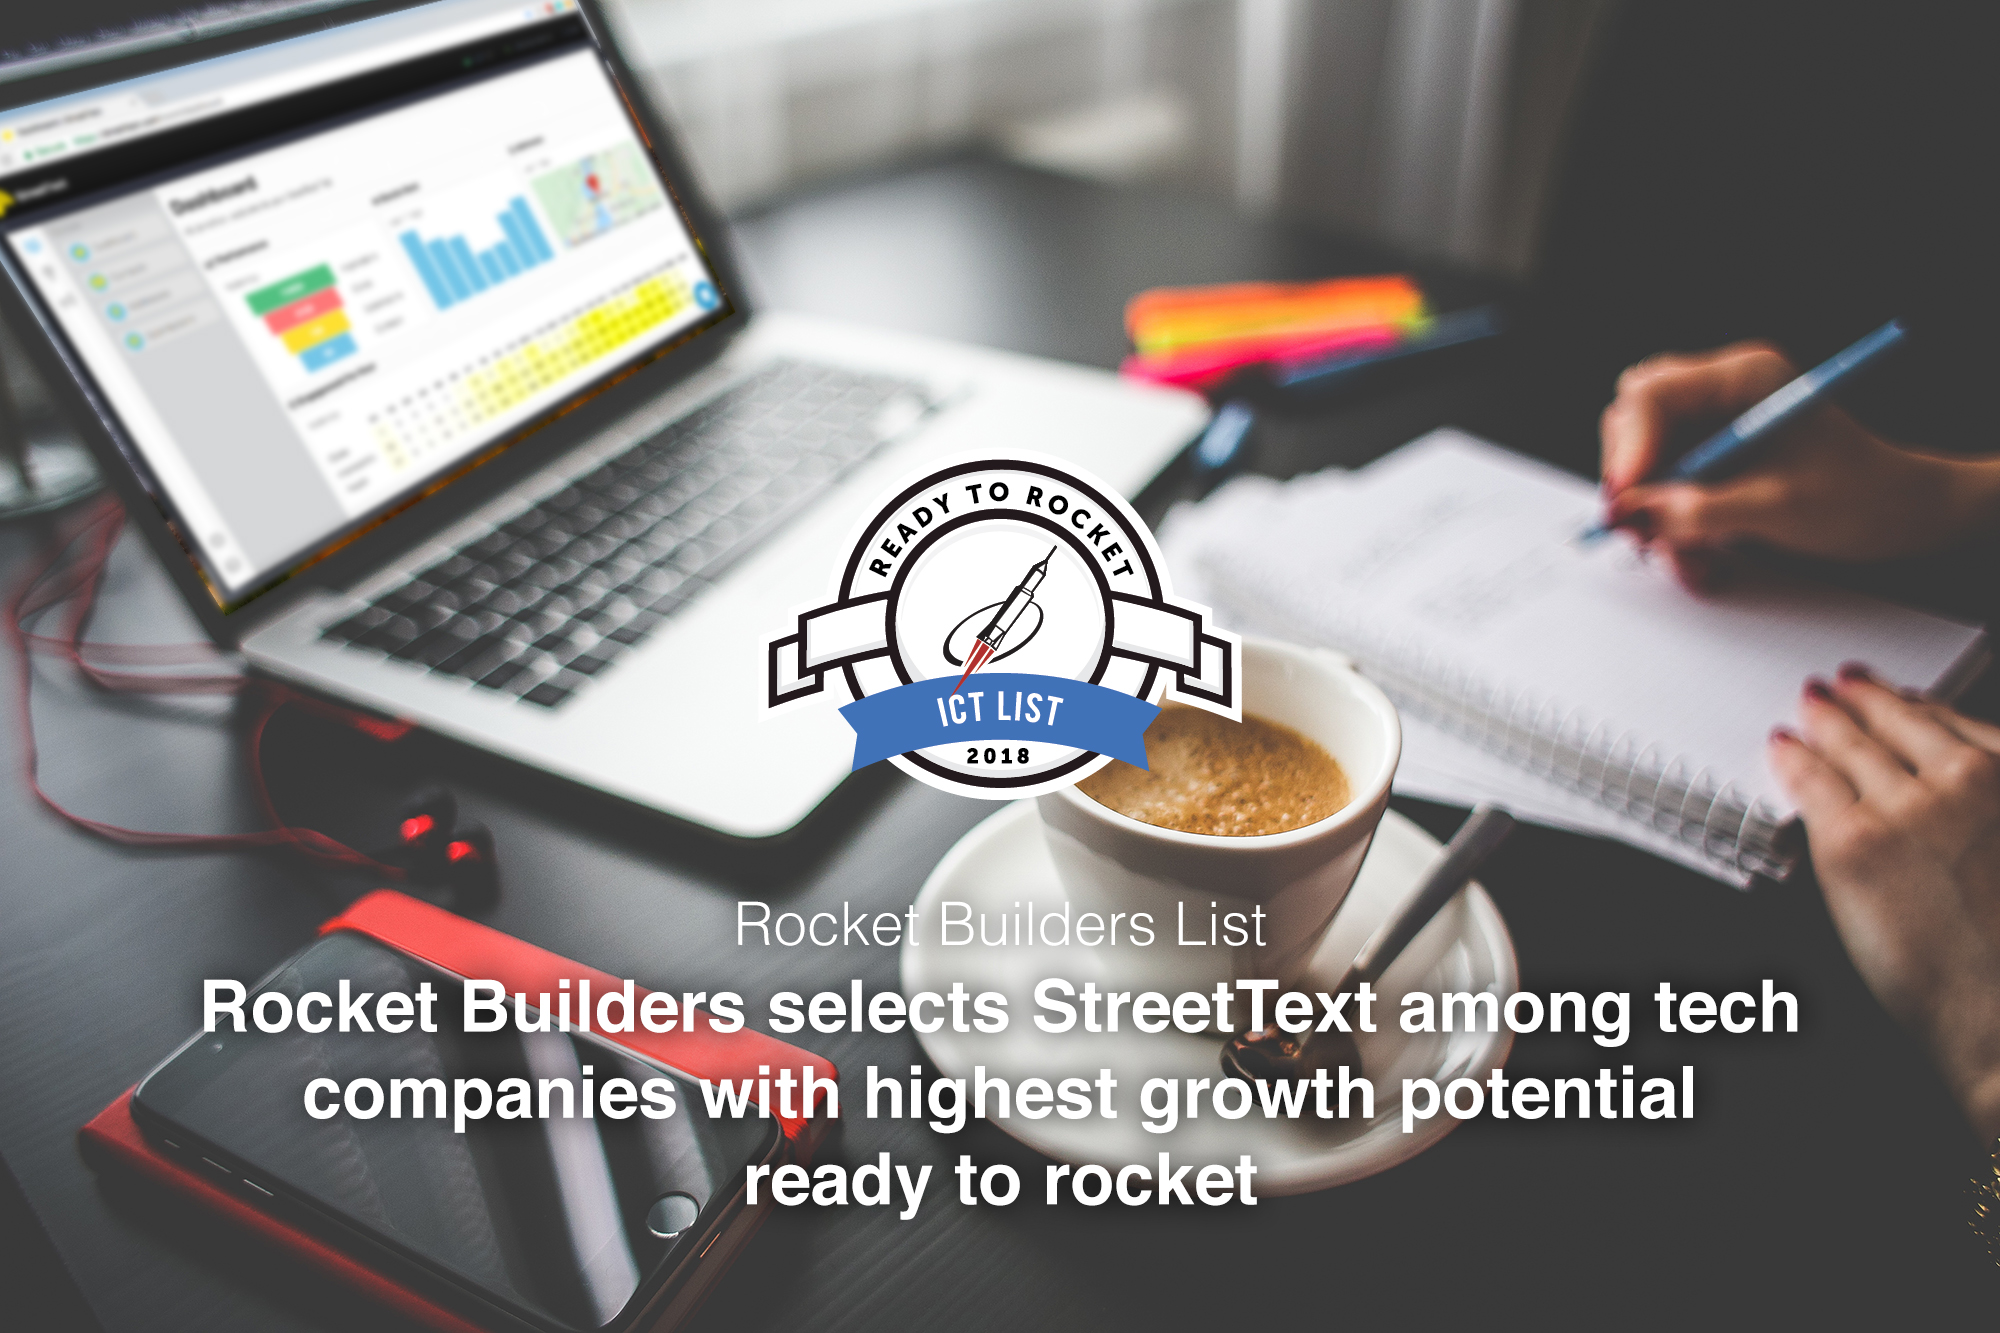 StreetText is selected on 2018 Ready To Rocket ICT list